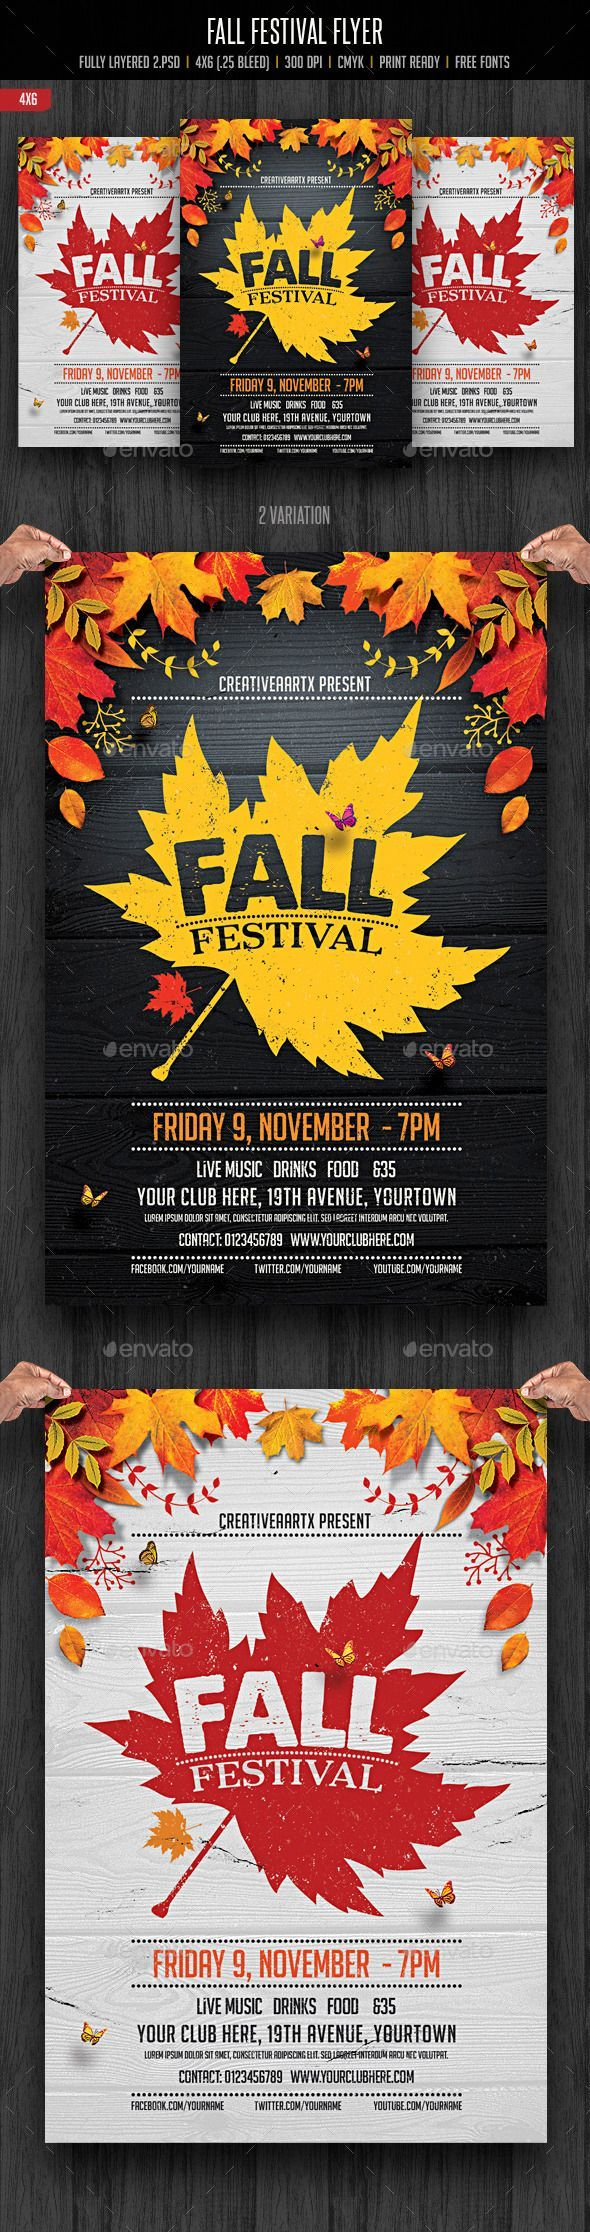 Fall Festival Flyer Template PSD #design Download: http://graphicriver.net/item/fall-festival-flyer/12842936?ref=ksioks